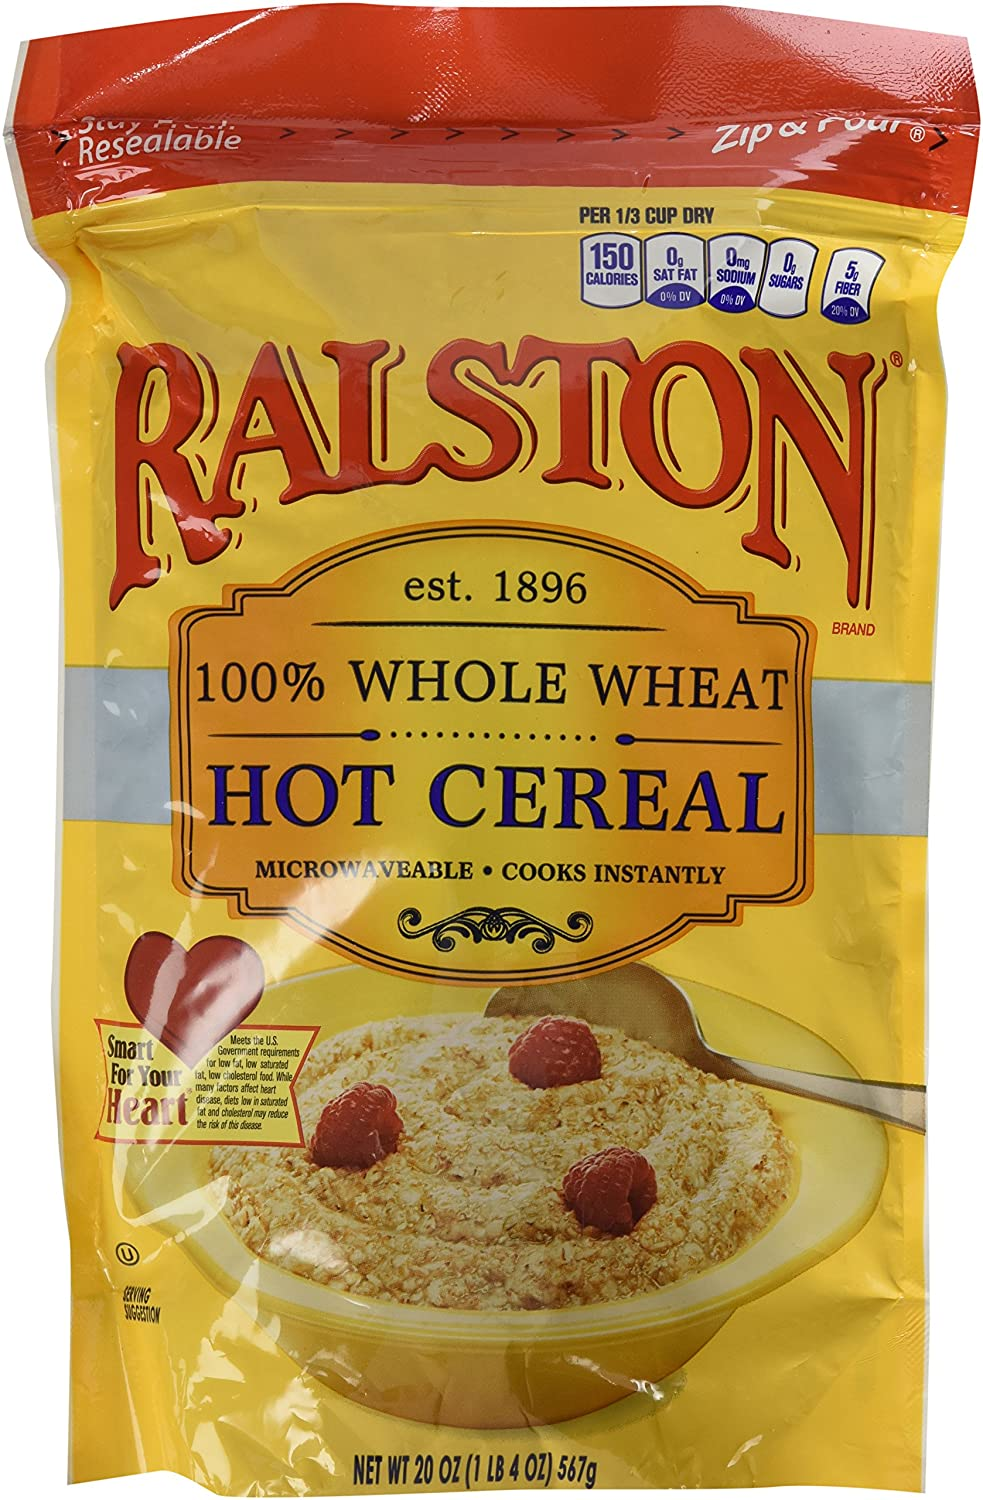 Ralston 100% Whole Wheat Hot Cereal, 3-Pack